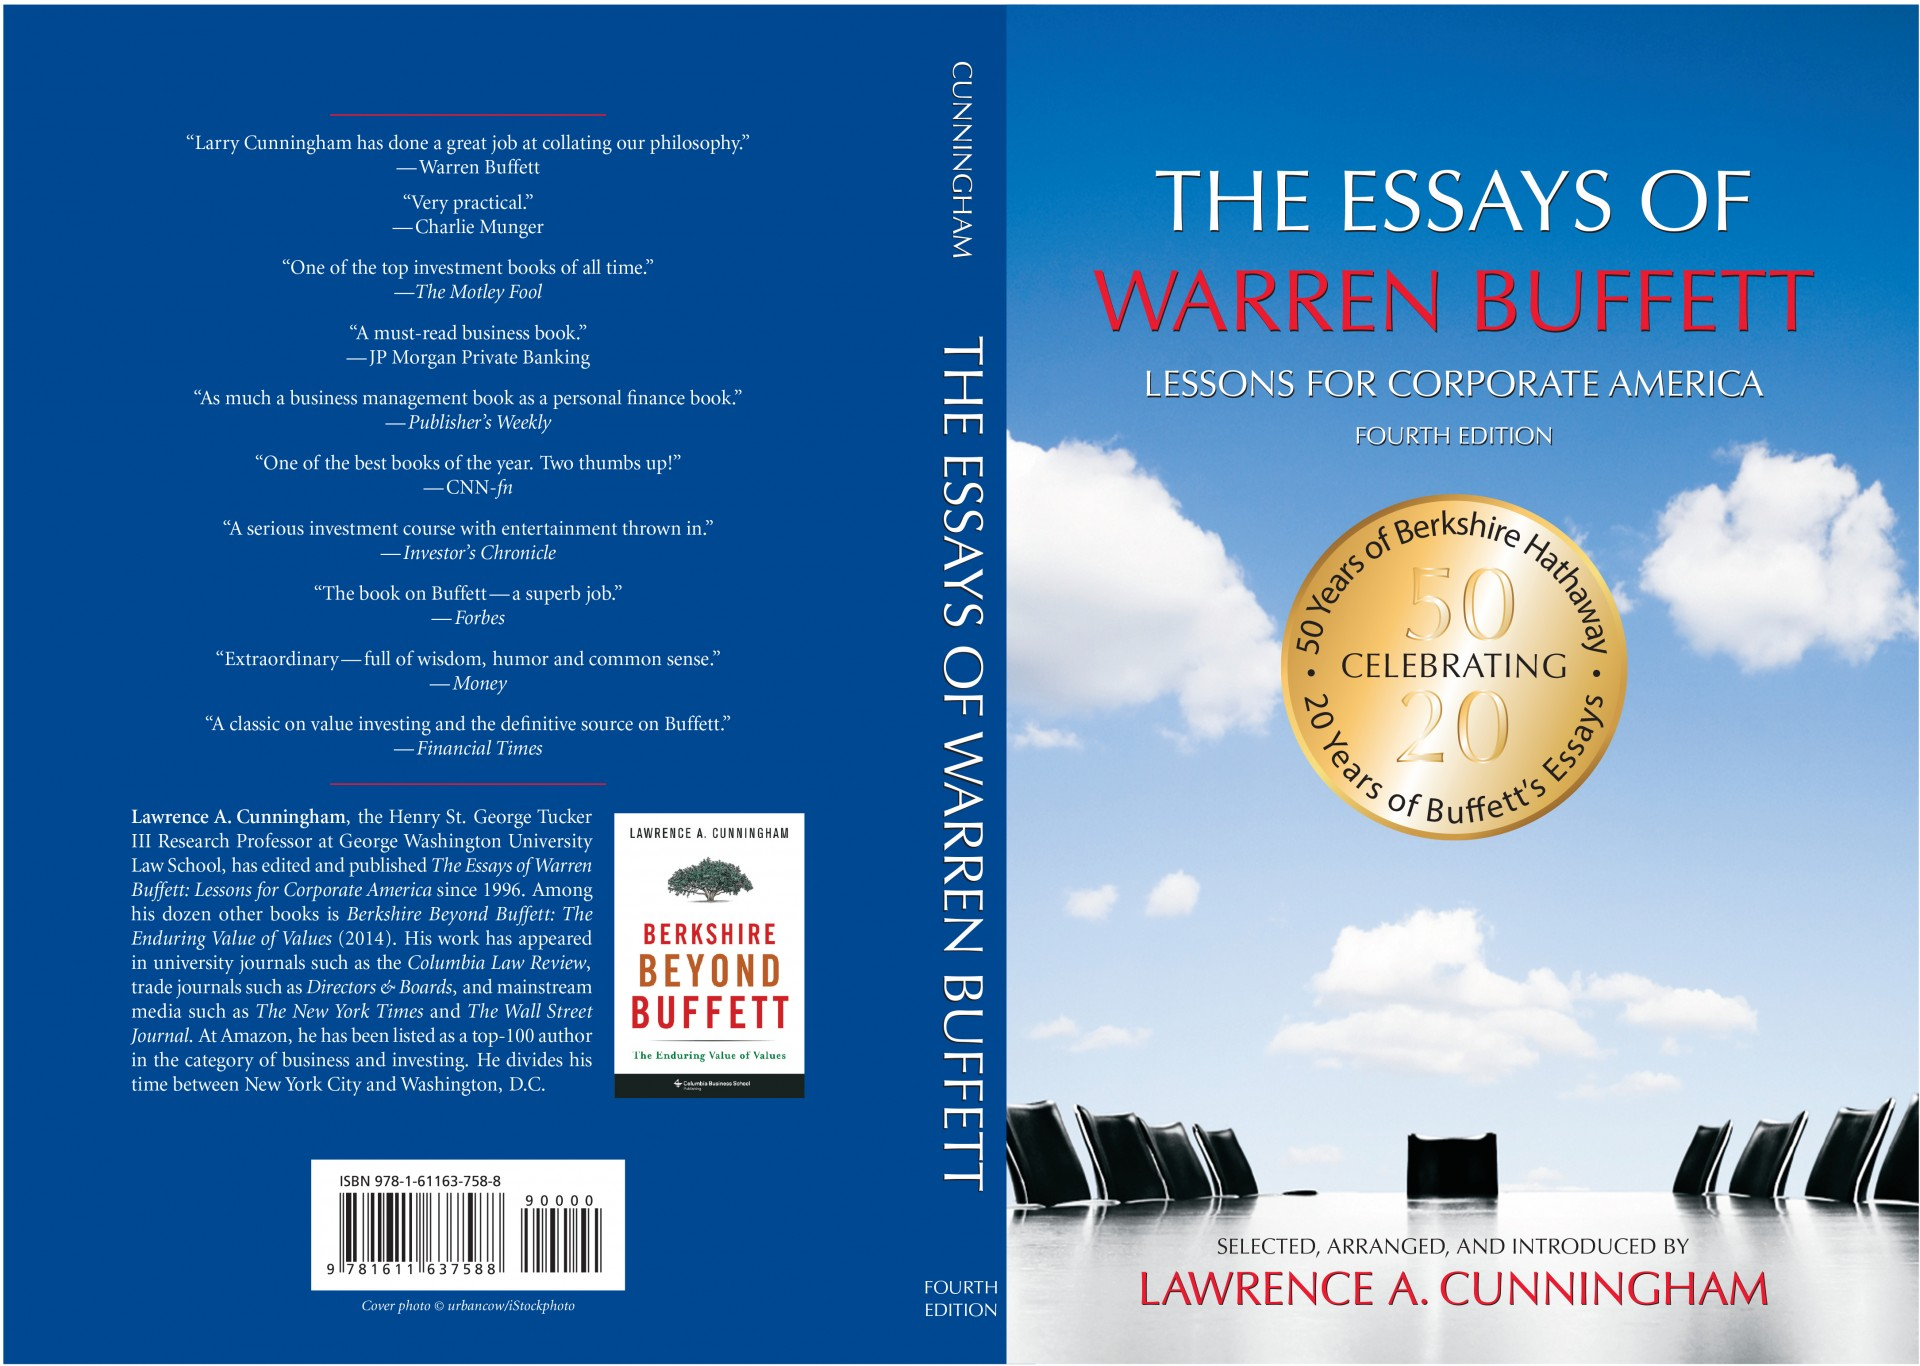 001 The Essays Of Warren Buffett Pdf Essay Best 4th Edition Lessons For Investors And Managers 2015 Free 1920